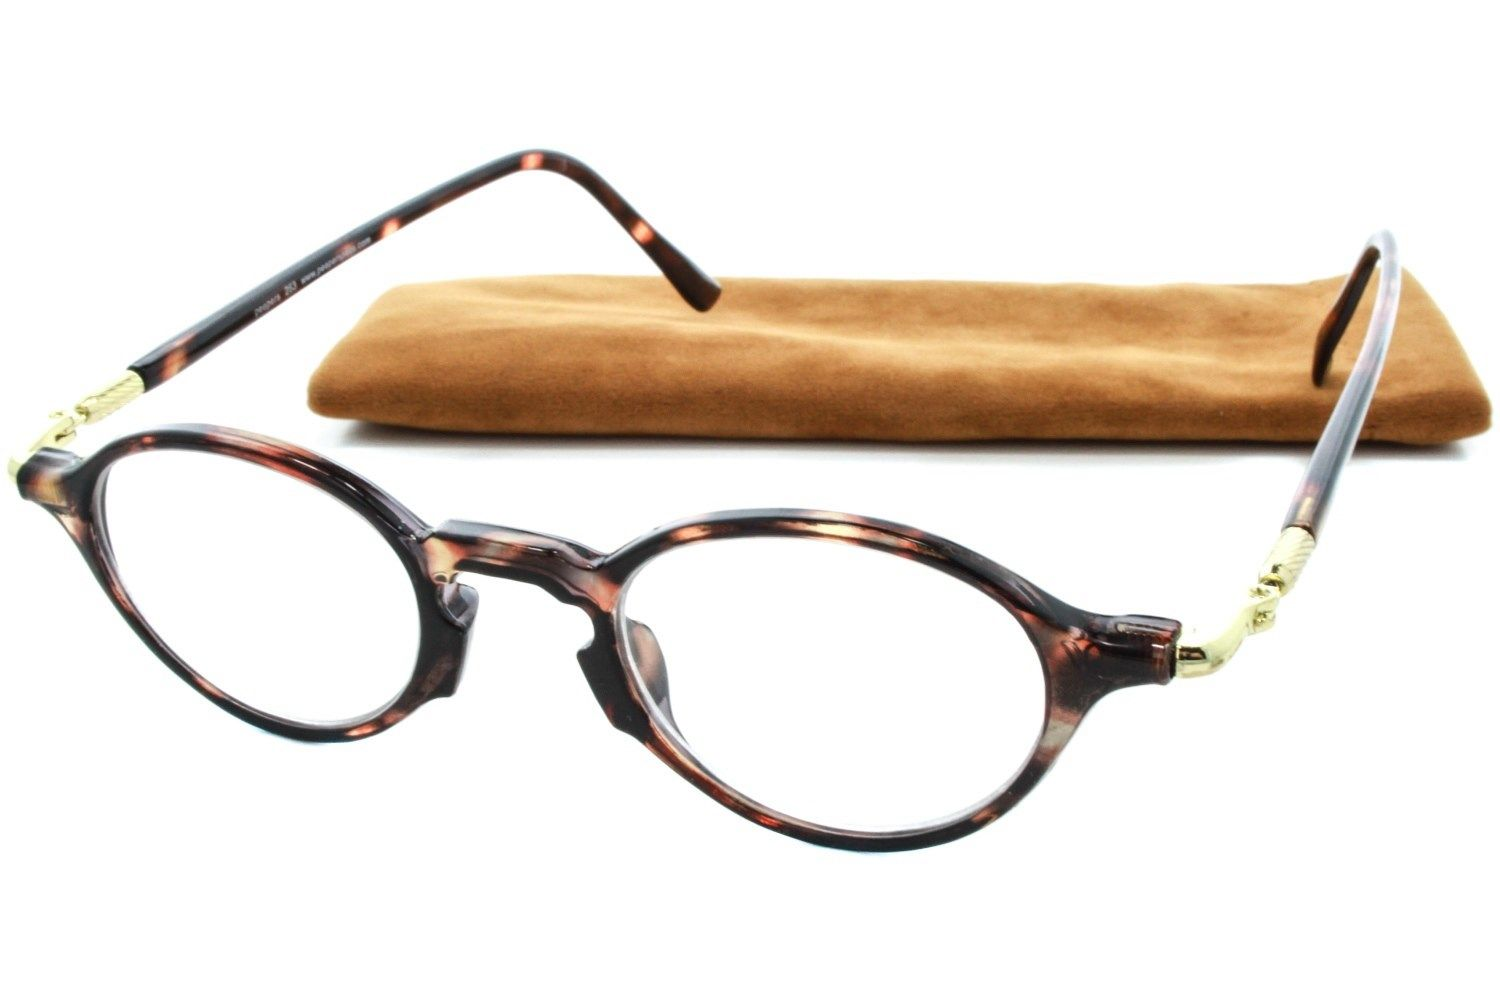 b25d3078bc1 Peepers See You Around is a pair of round retro readers. Featuring the  unique keyhole bridge